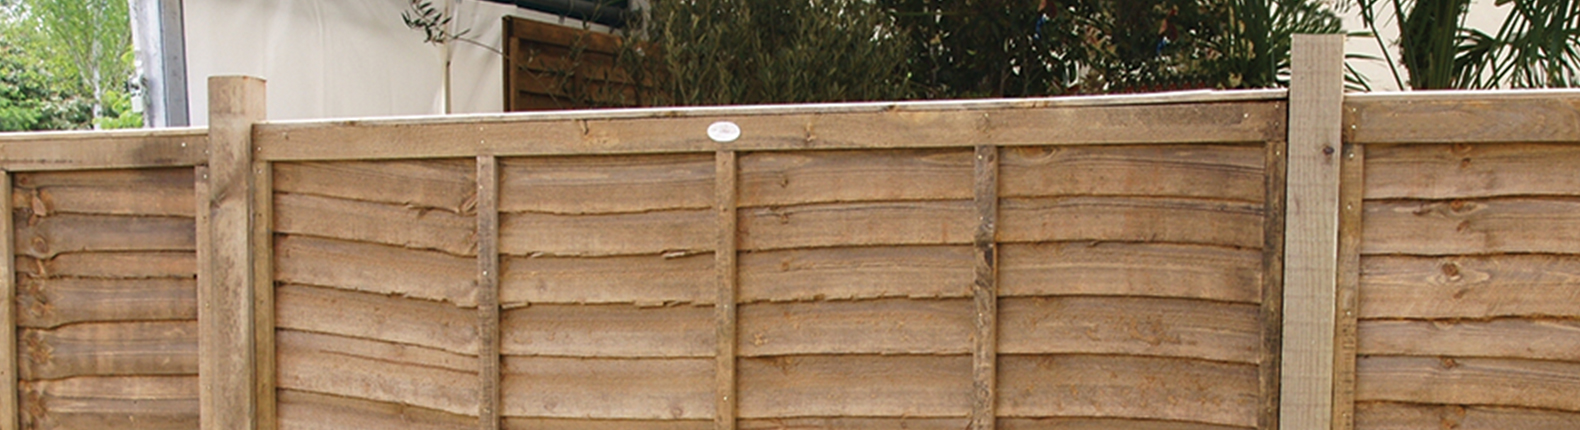 Brown fence panel